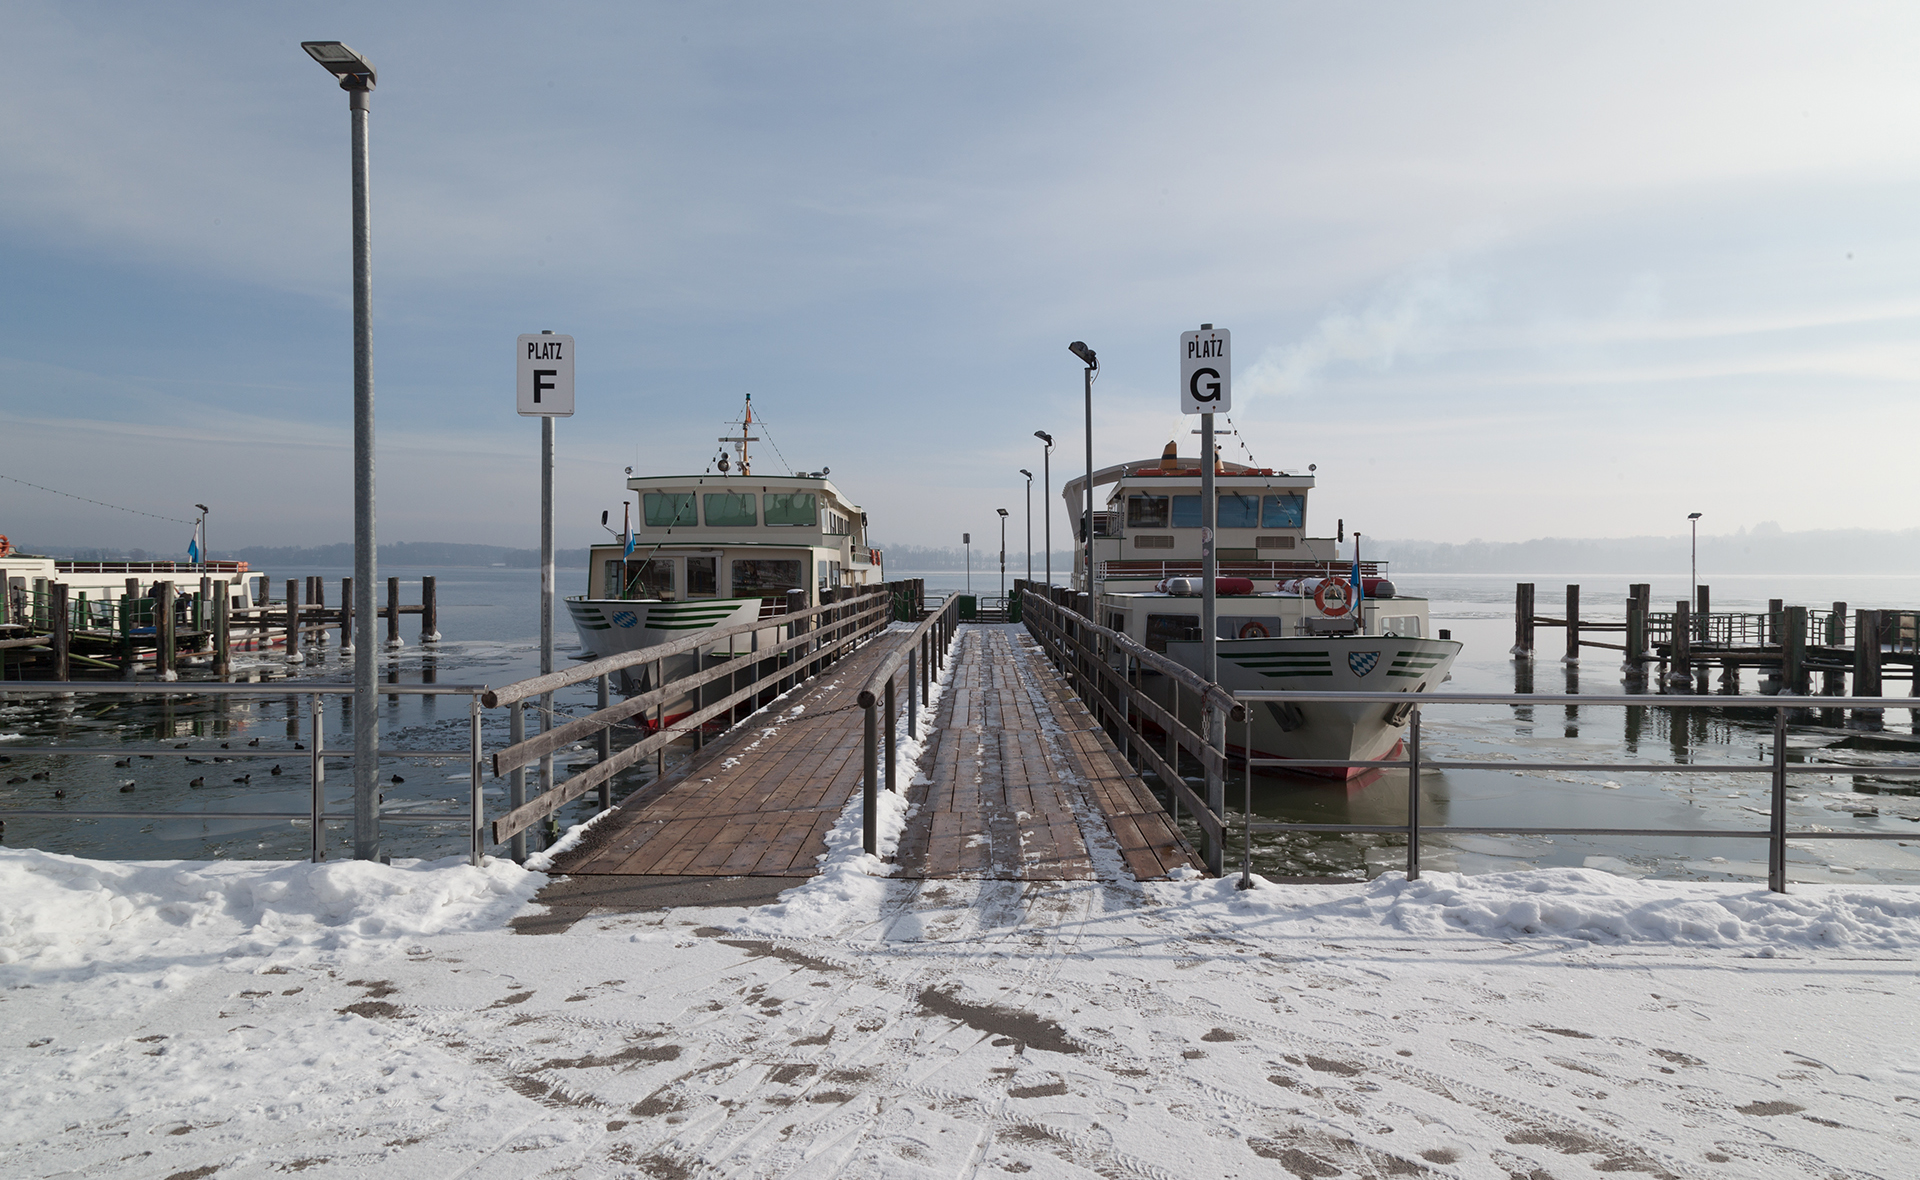 Two ships are moored at the snow-covered Chiemsee mooring.